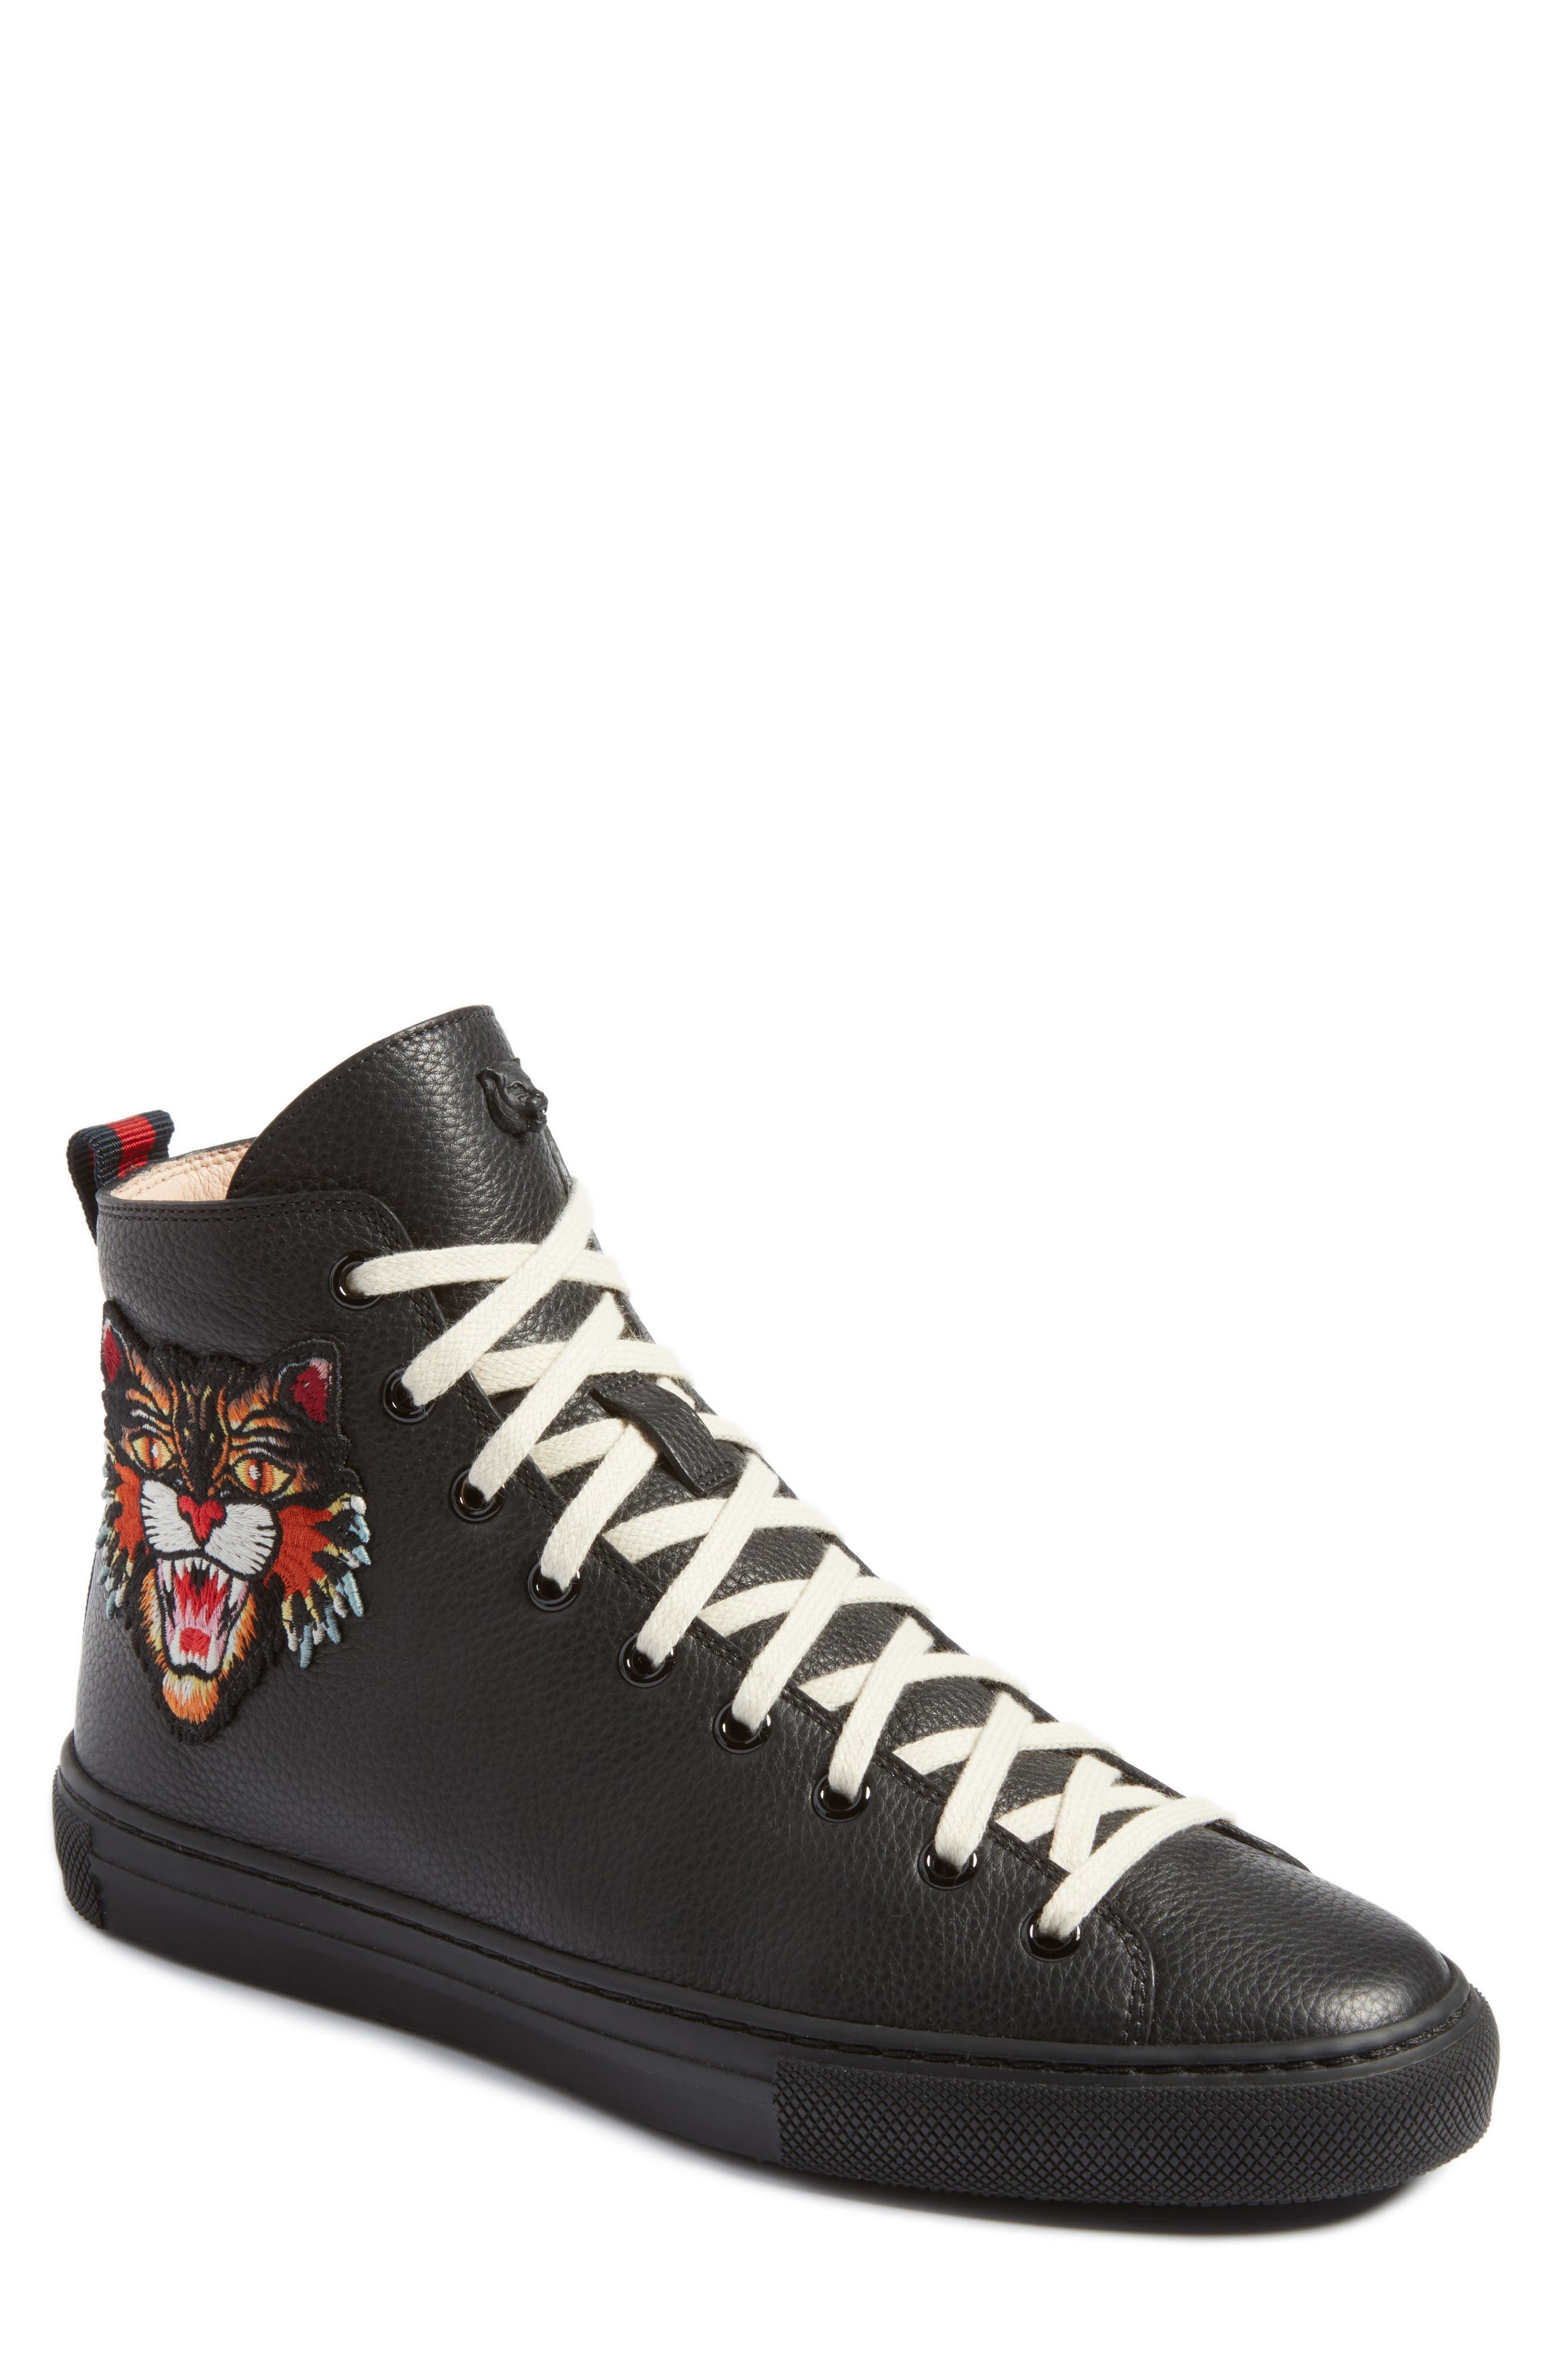 Alternate Image 1 Selected - Gucci Major High Top Sneaker (Men)